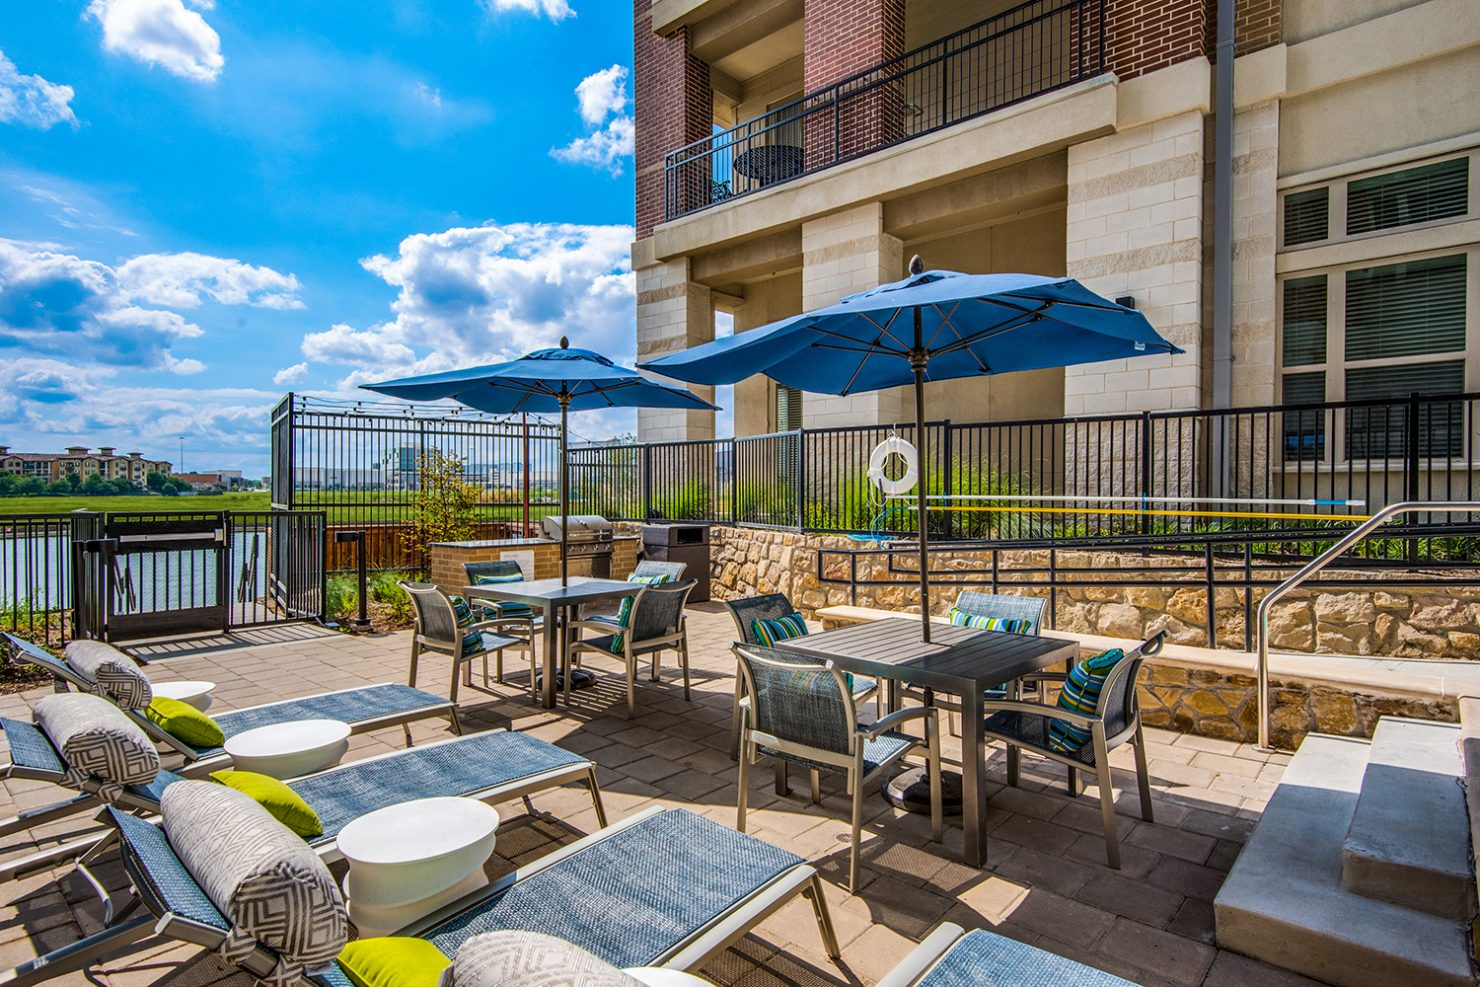 Outdoor lounge area with umbrella tables, chairs, and loungers with view of Lake Carolyn